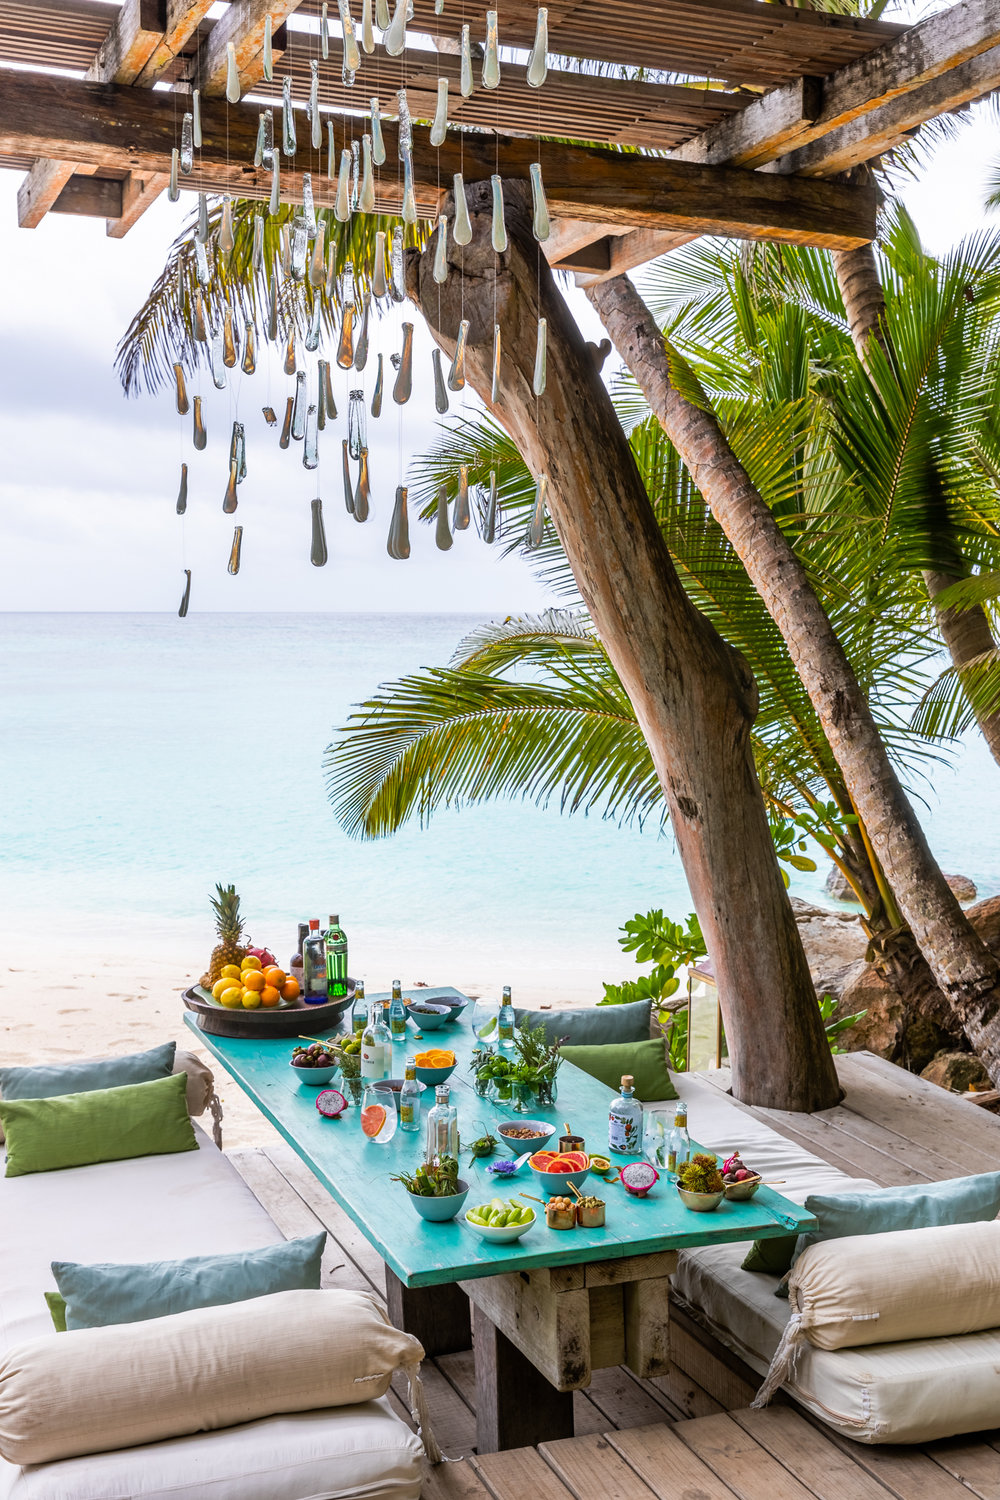 A unique craft gin tasting with endless ocean views at the Piazza on North Island, Seychelles